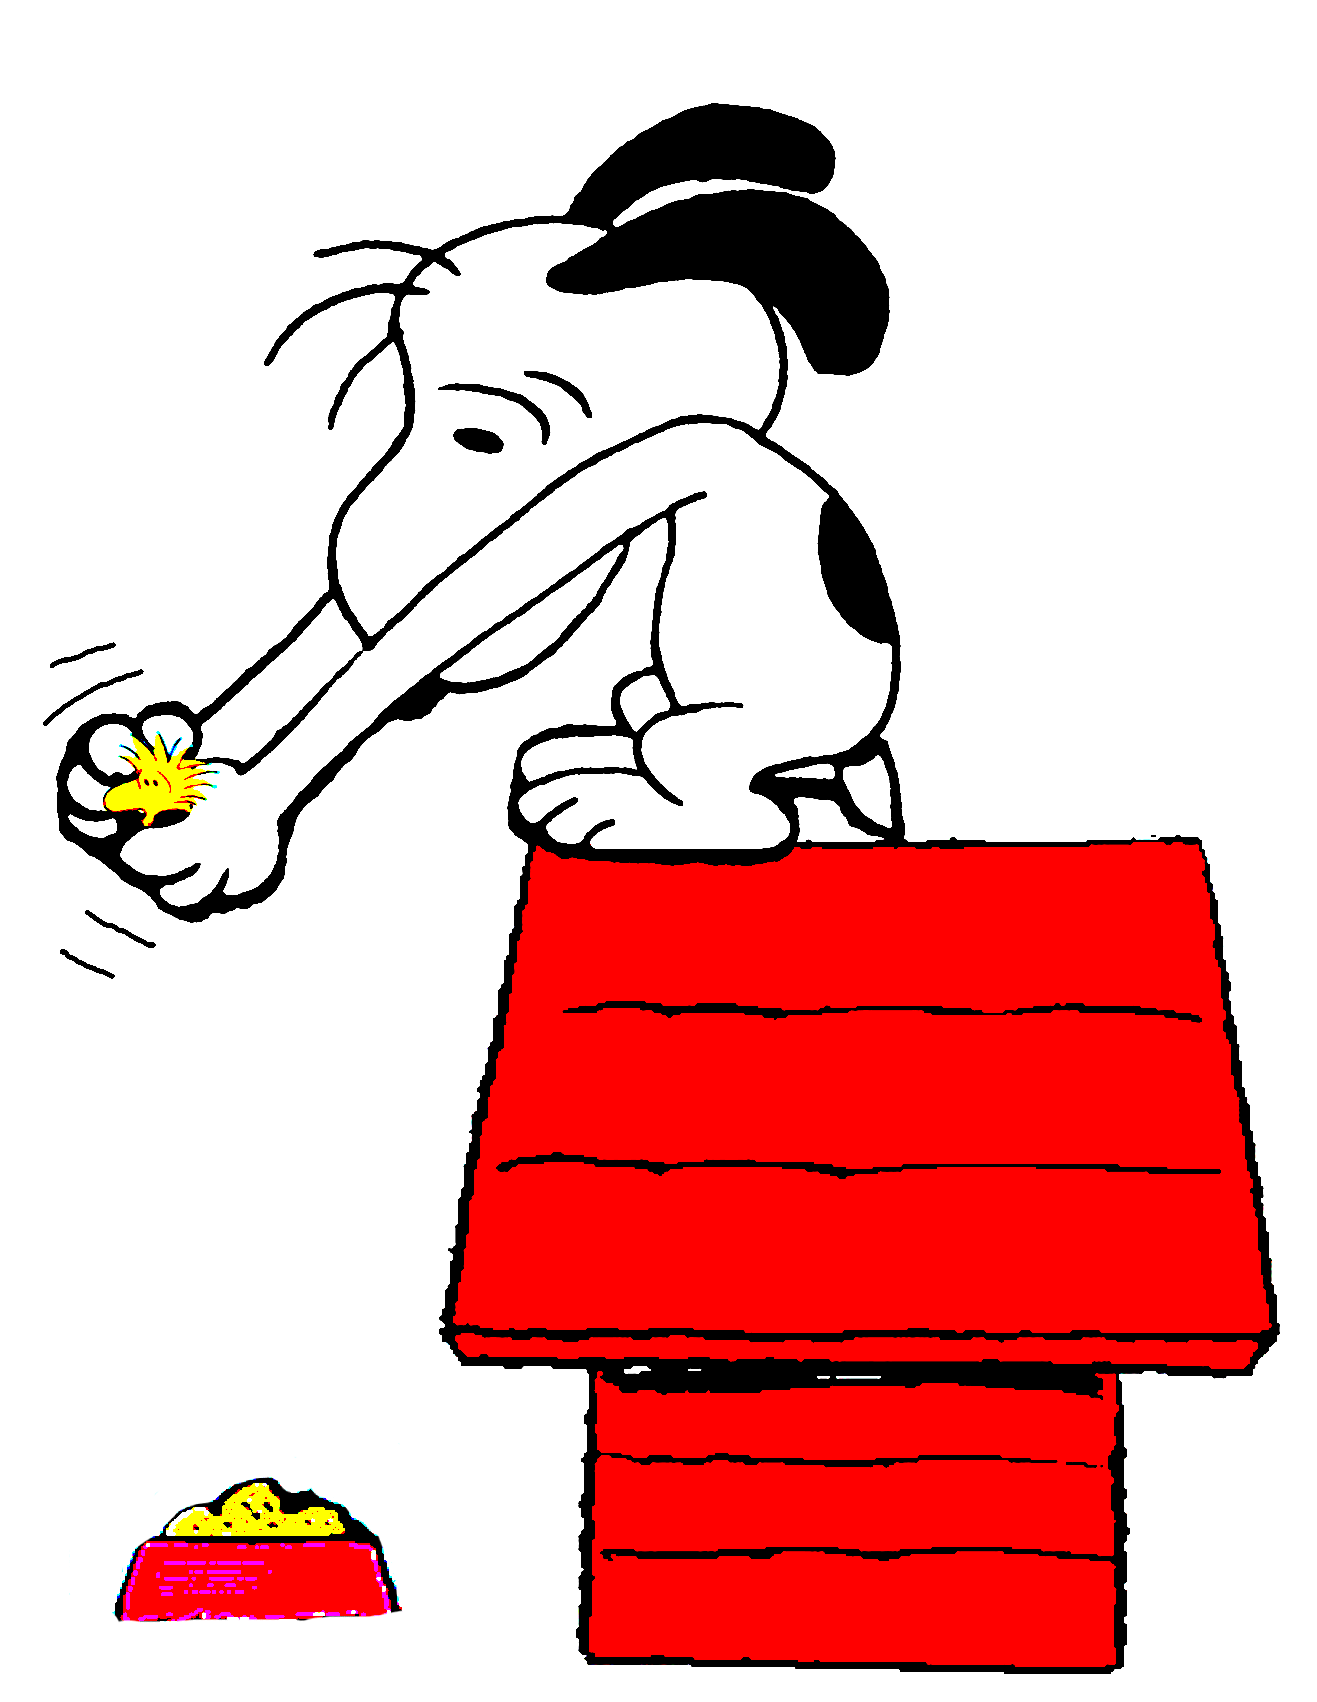 Snoopy dog house clipart clip art Snoopy Woodstock | Peanuts | Pinterest | Snoopy, Charlie brown and ... clip art